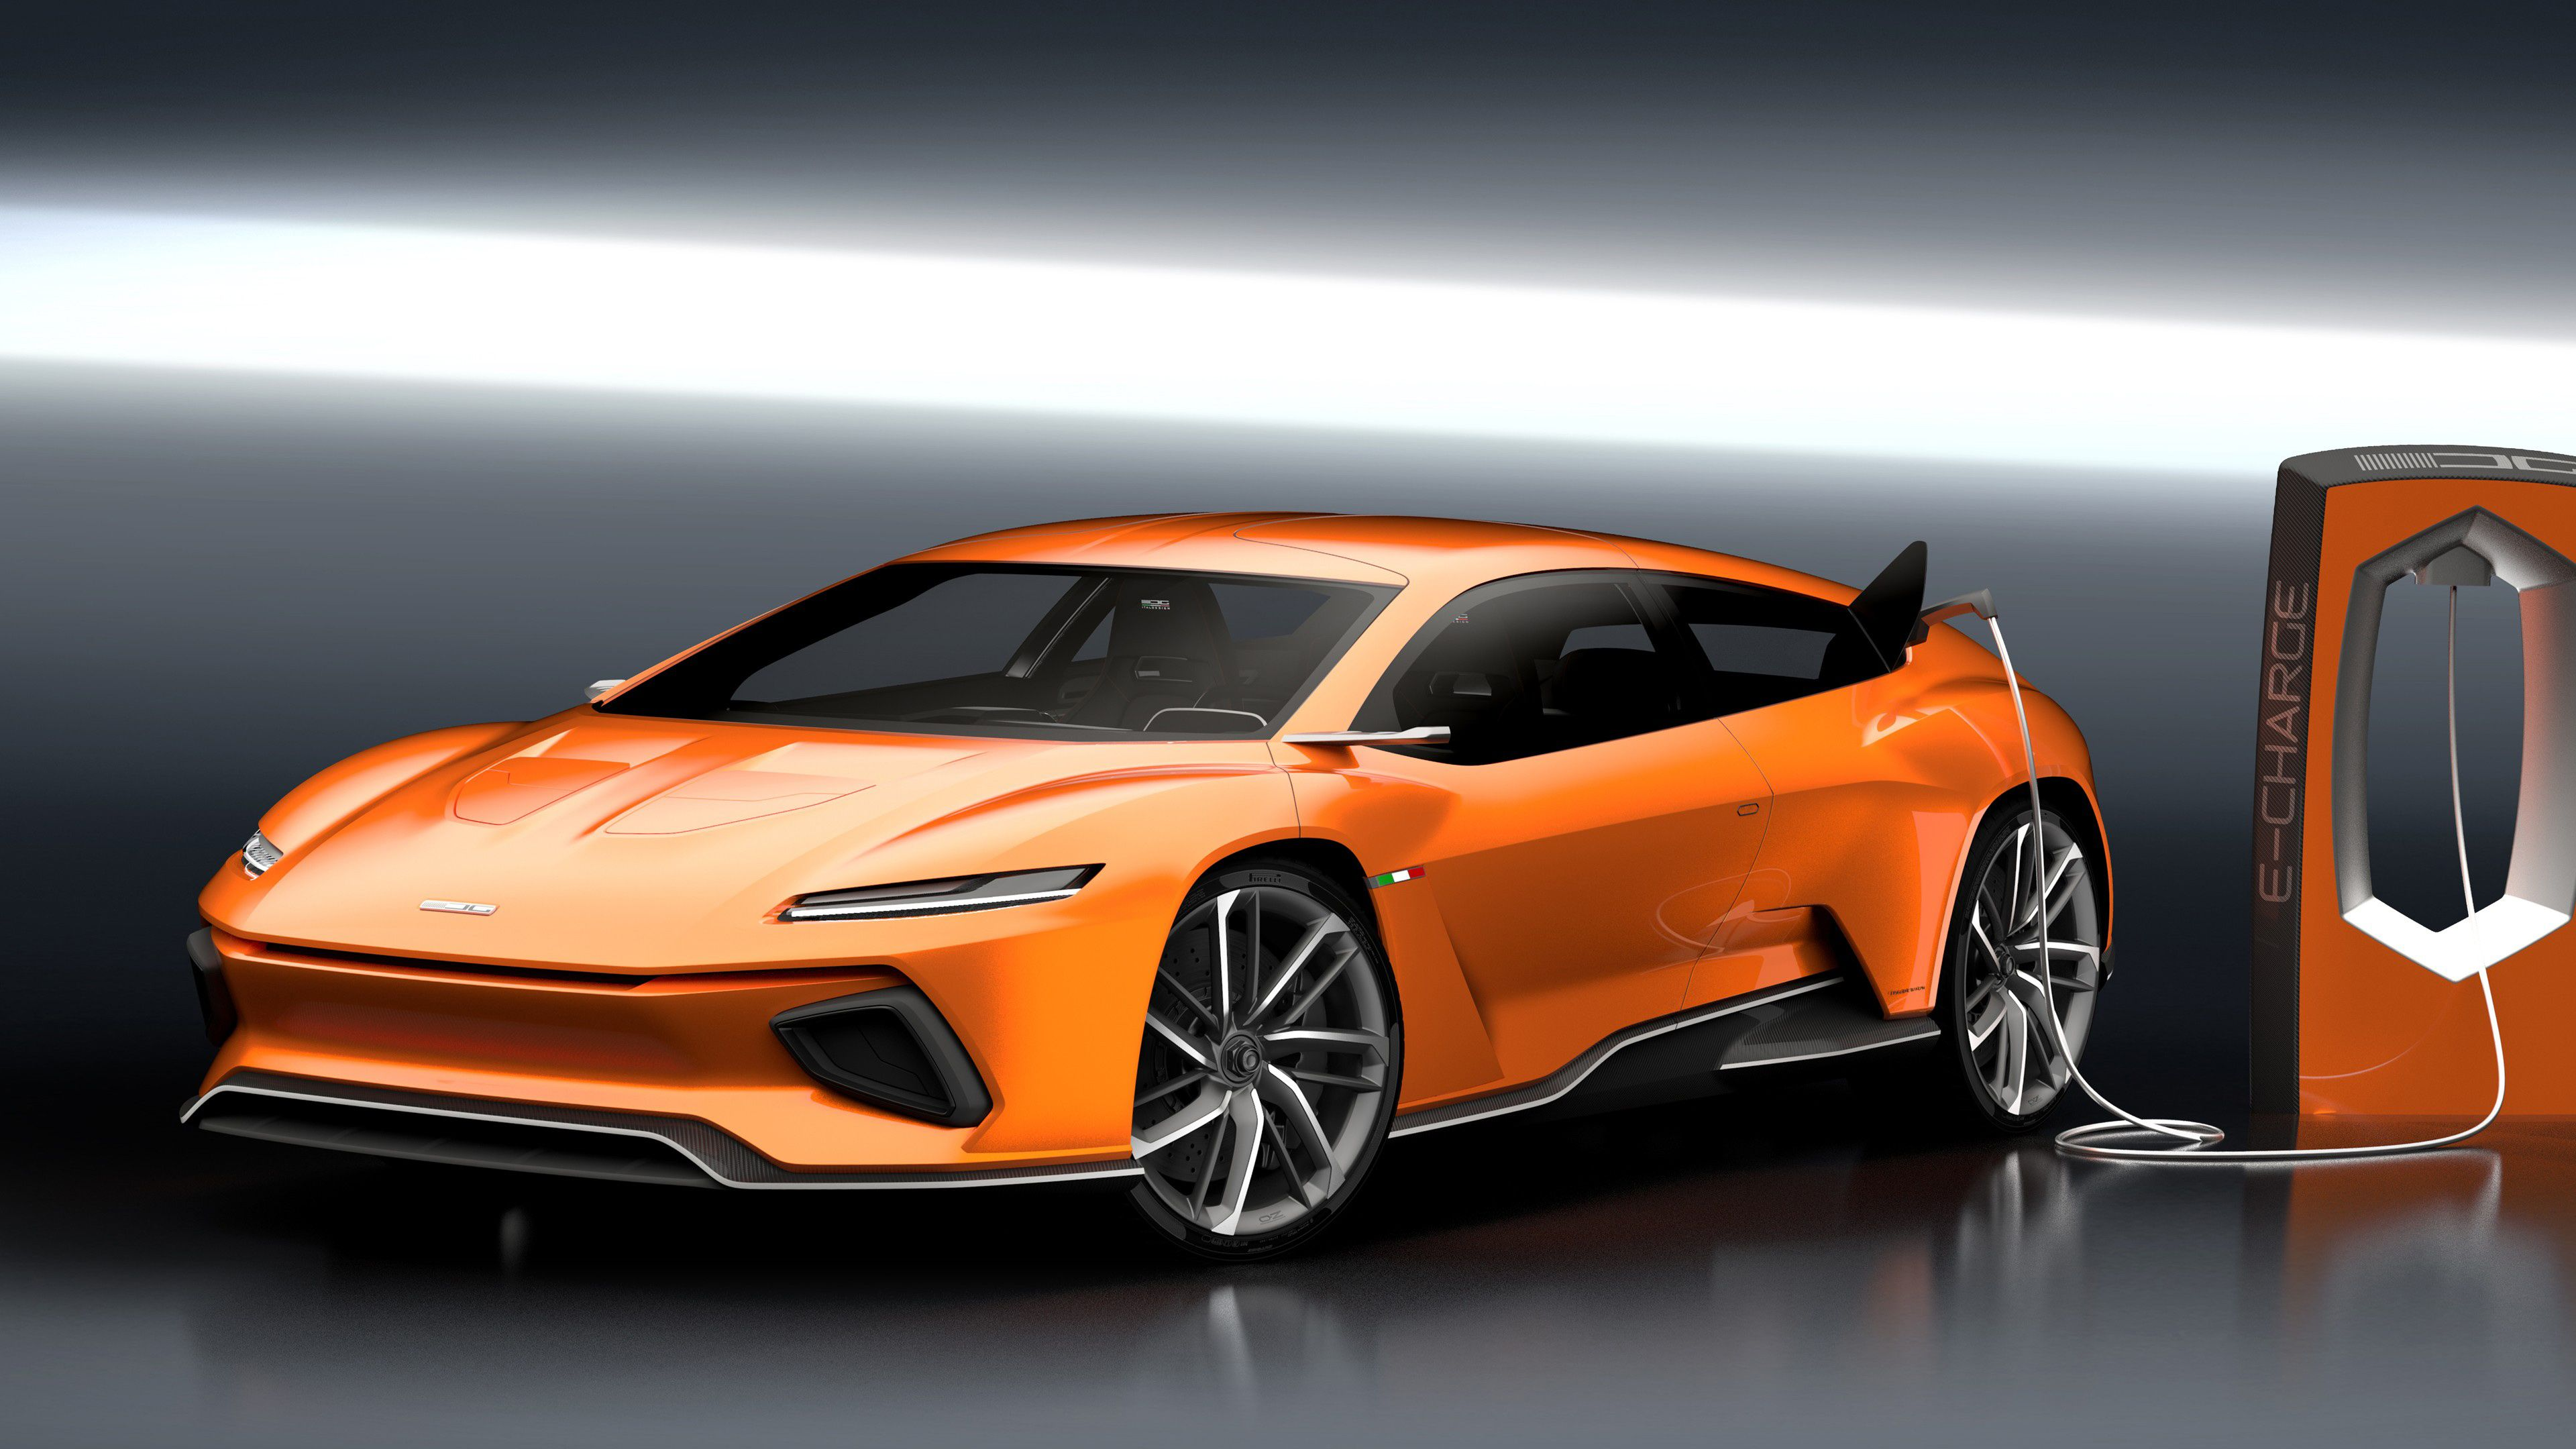 Image result for electric car hd images